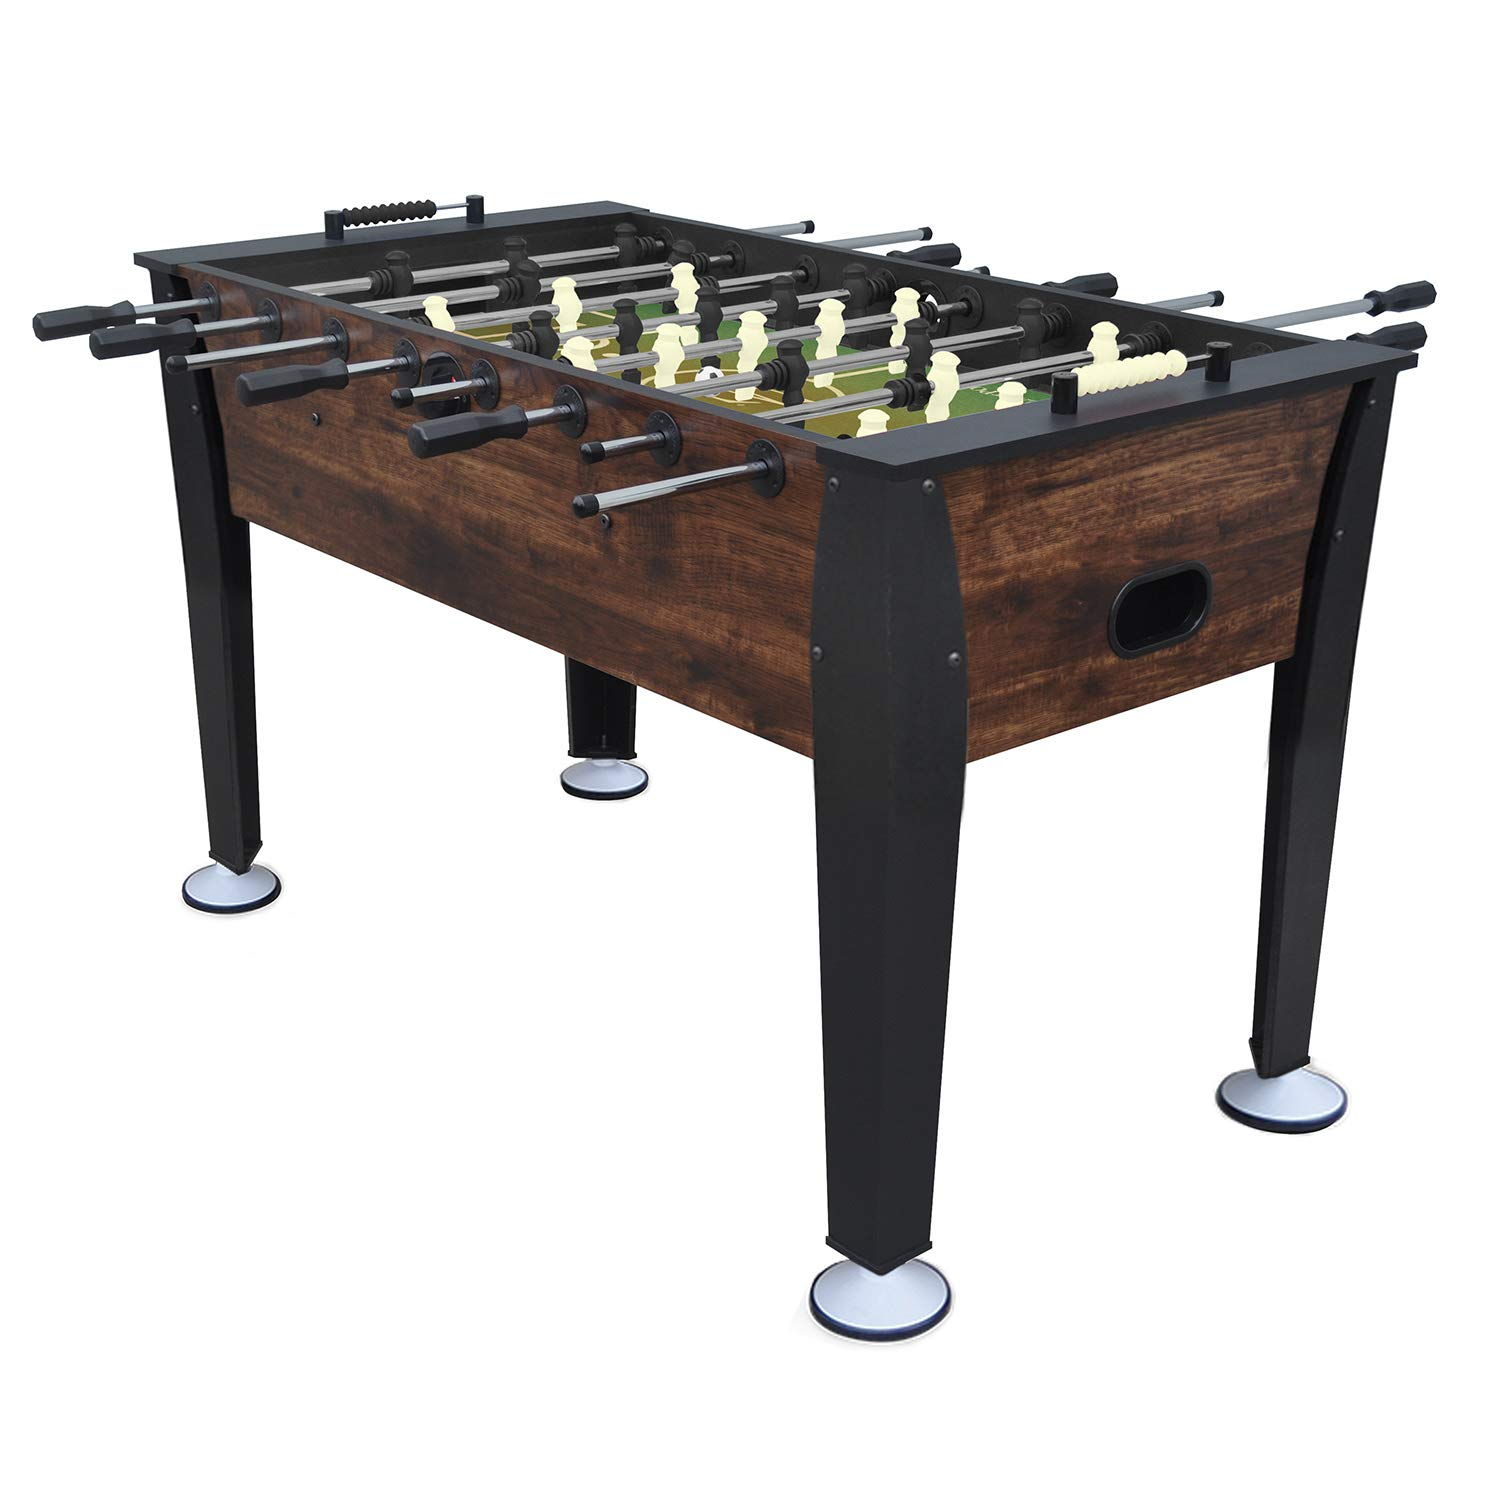 Eastpoint Sports Preston Foosball Table Game 54 Inches Features Hollow Steel Player Rods Bead Style Scoring And Includes 2 Foosball Balls